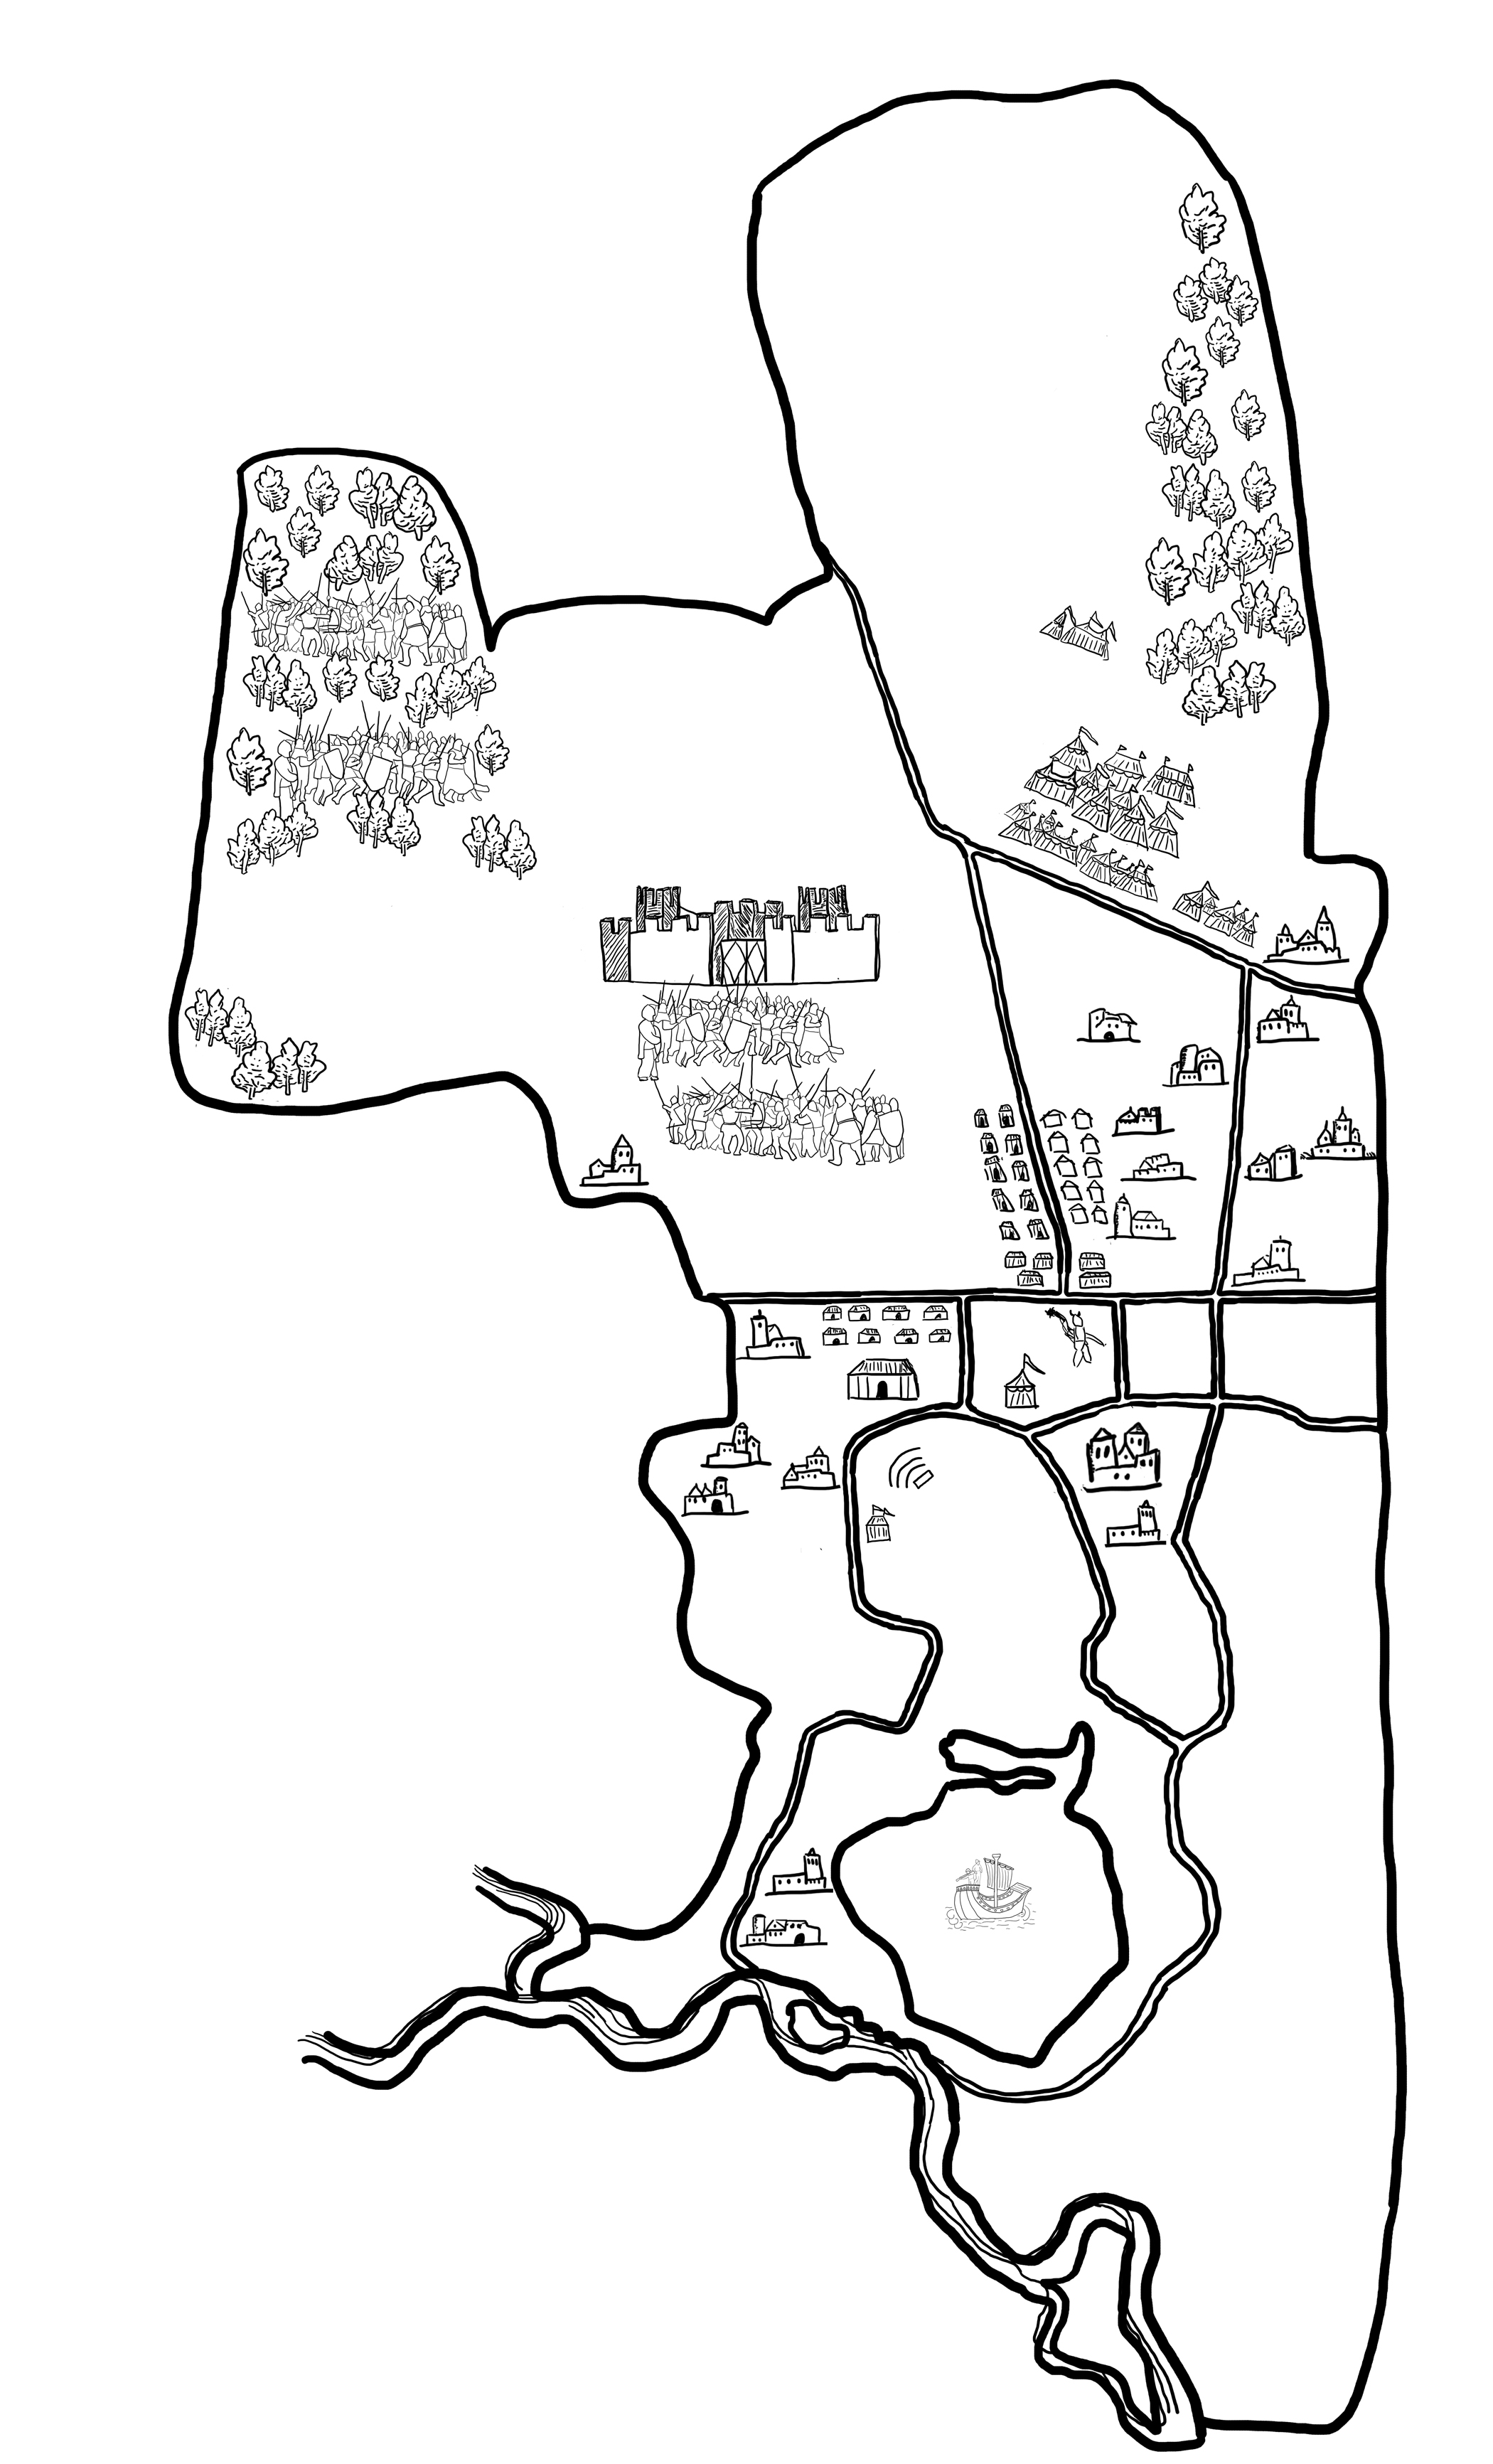 pennsic map with royal camps blastedoak